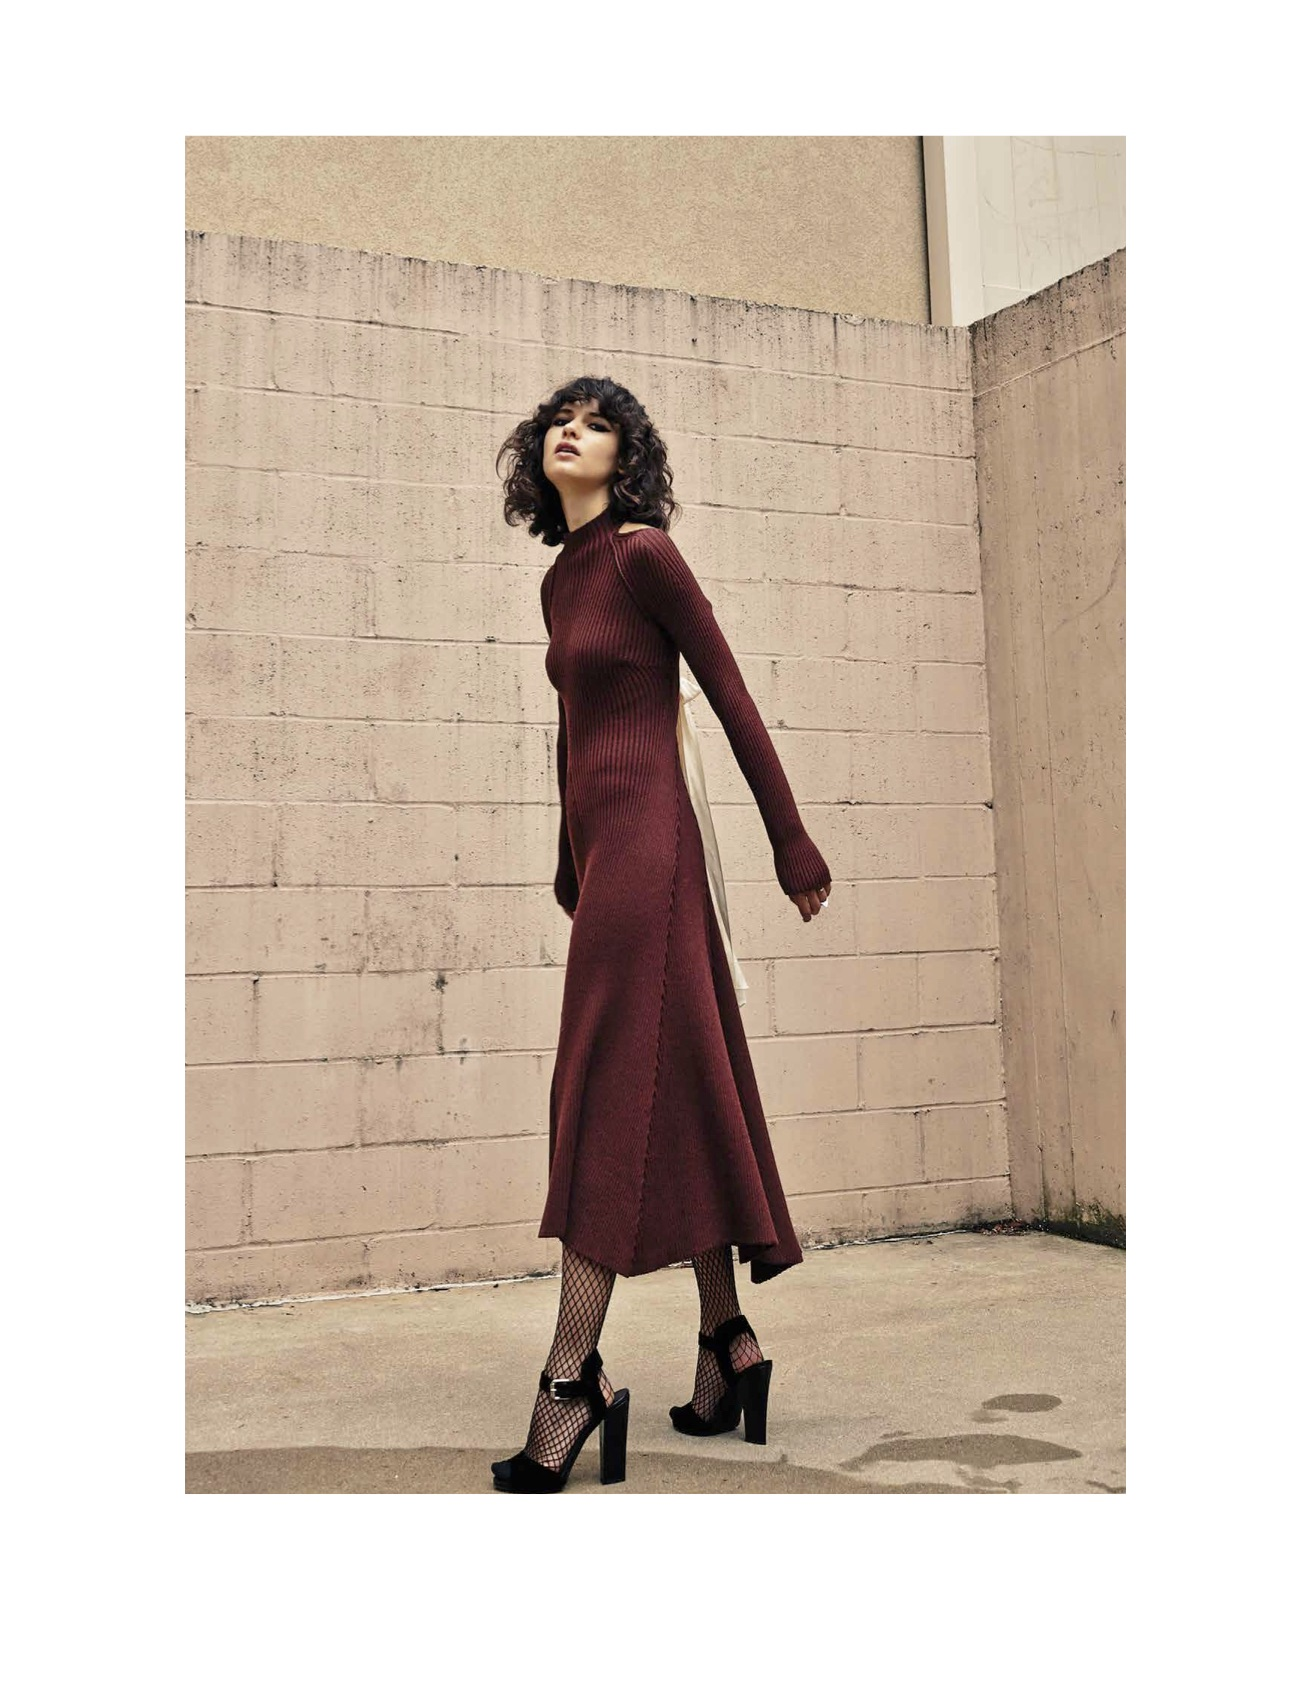 ElleMalaysiaOctober2015 (dragged) 3.jpg